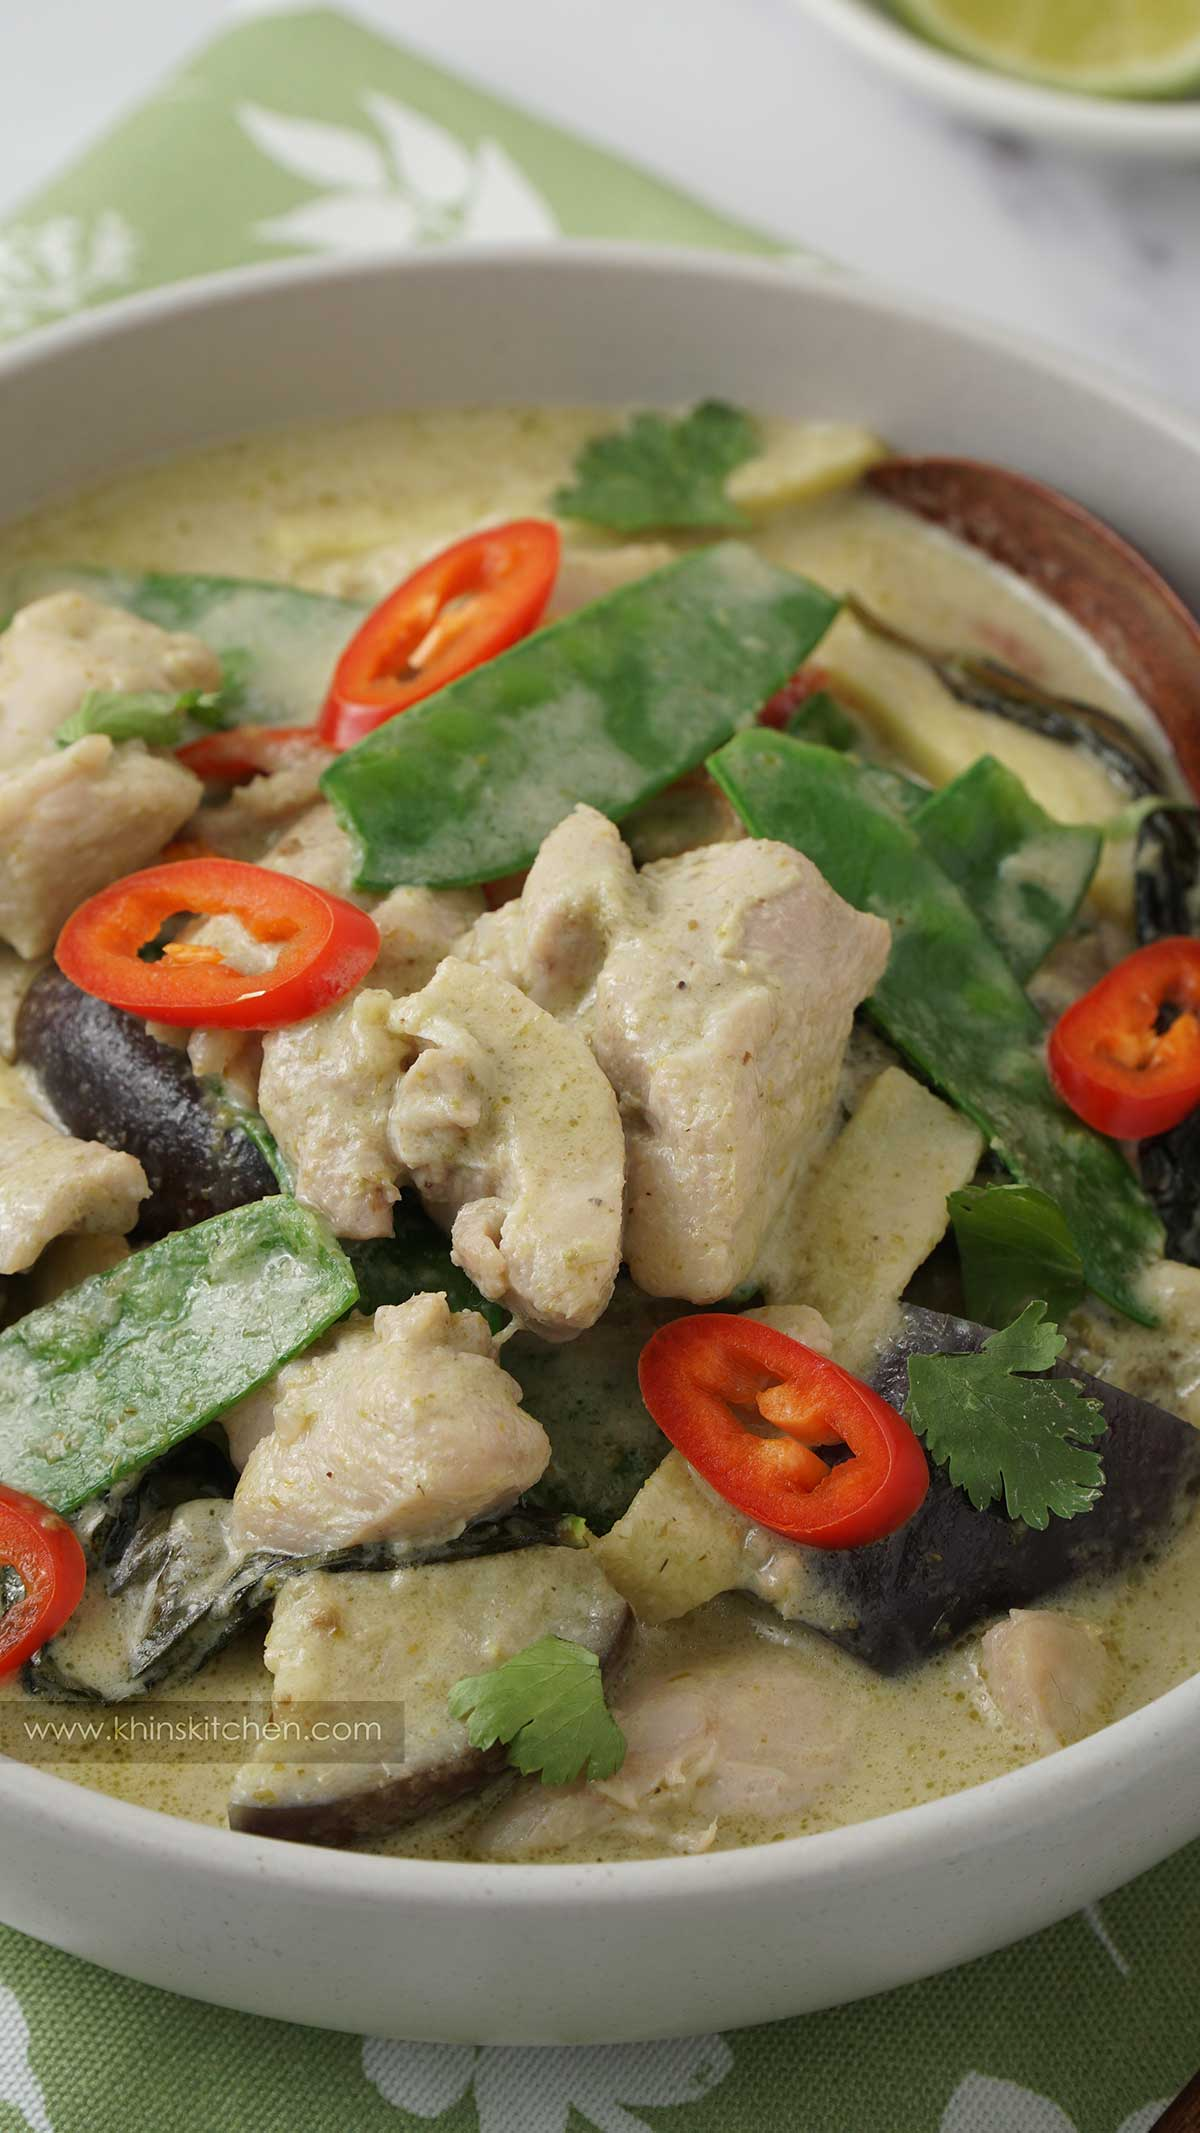 close up view of thai curry in a grey bowl.